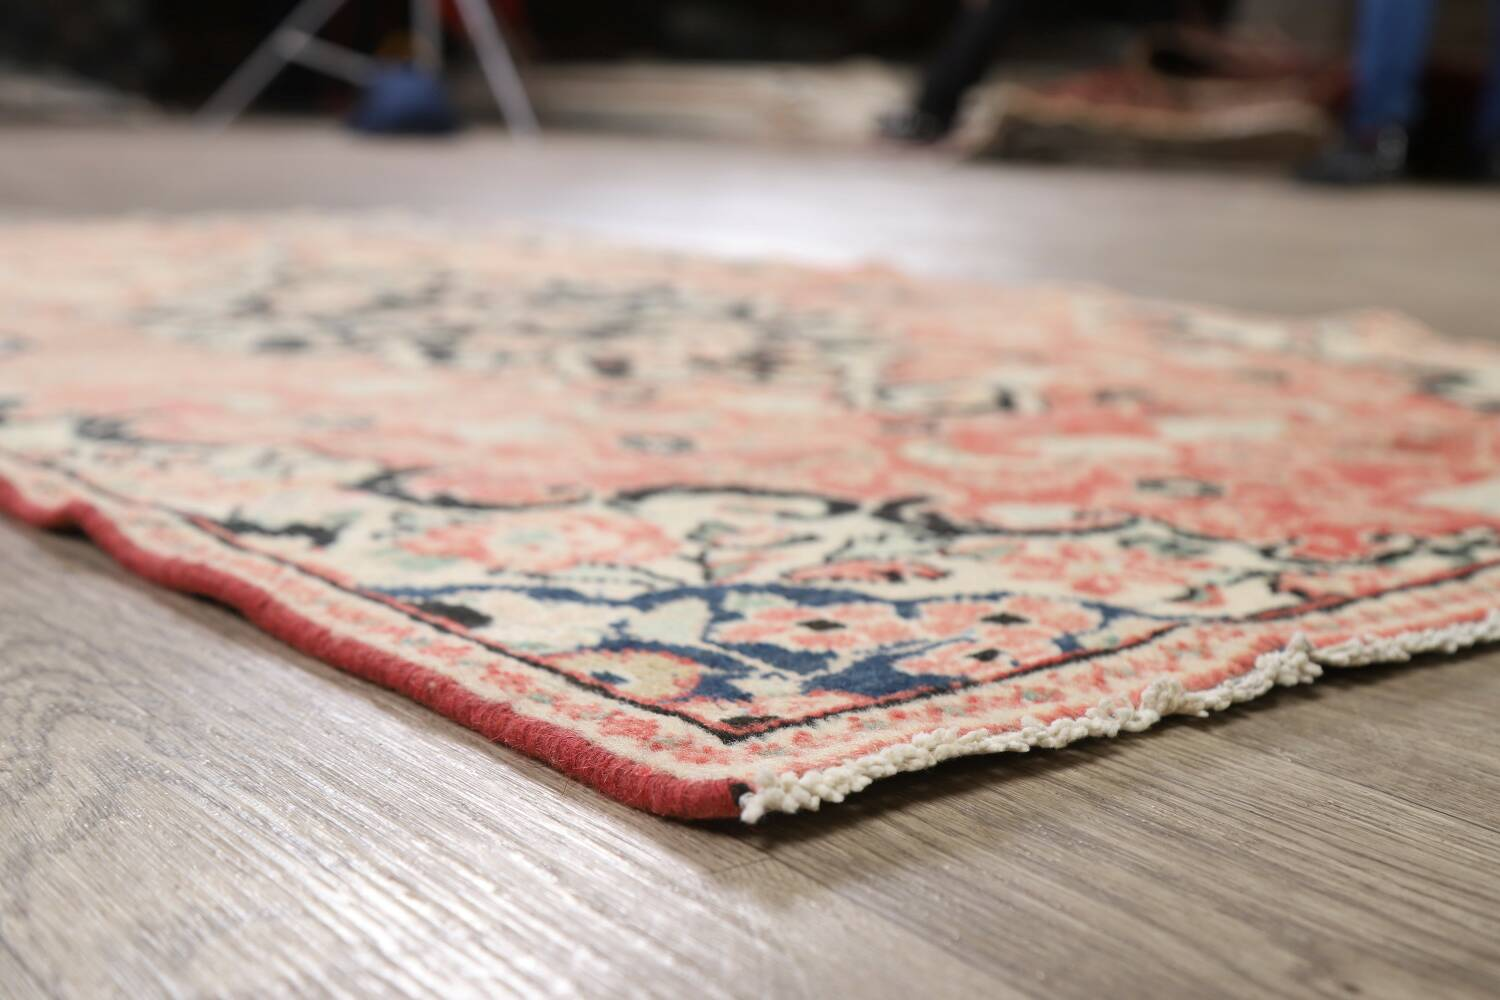 Antique Floral Mahal Persian Area Rug 3x6 image 7